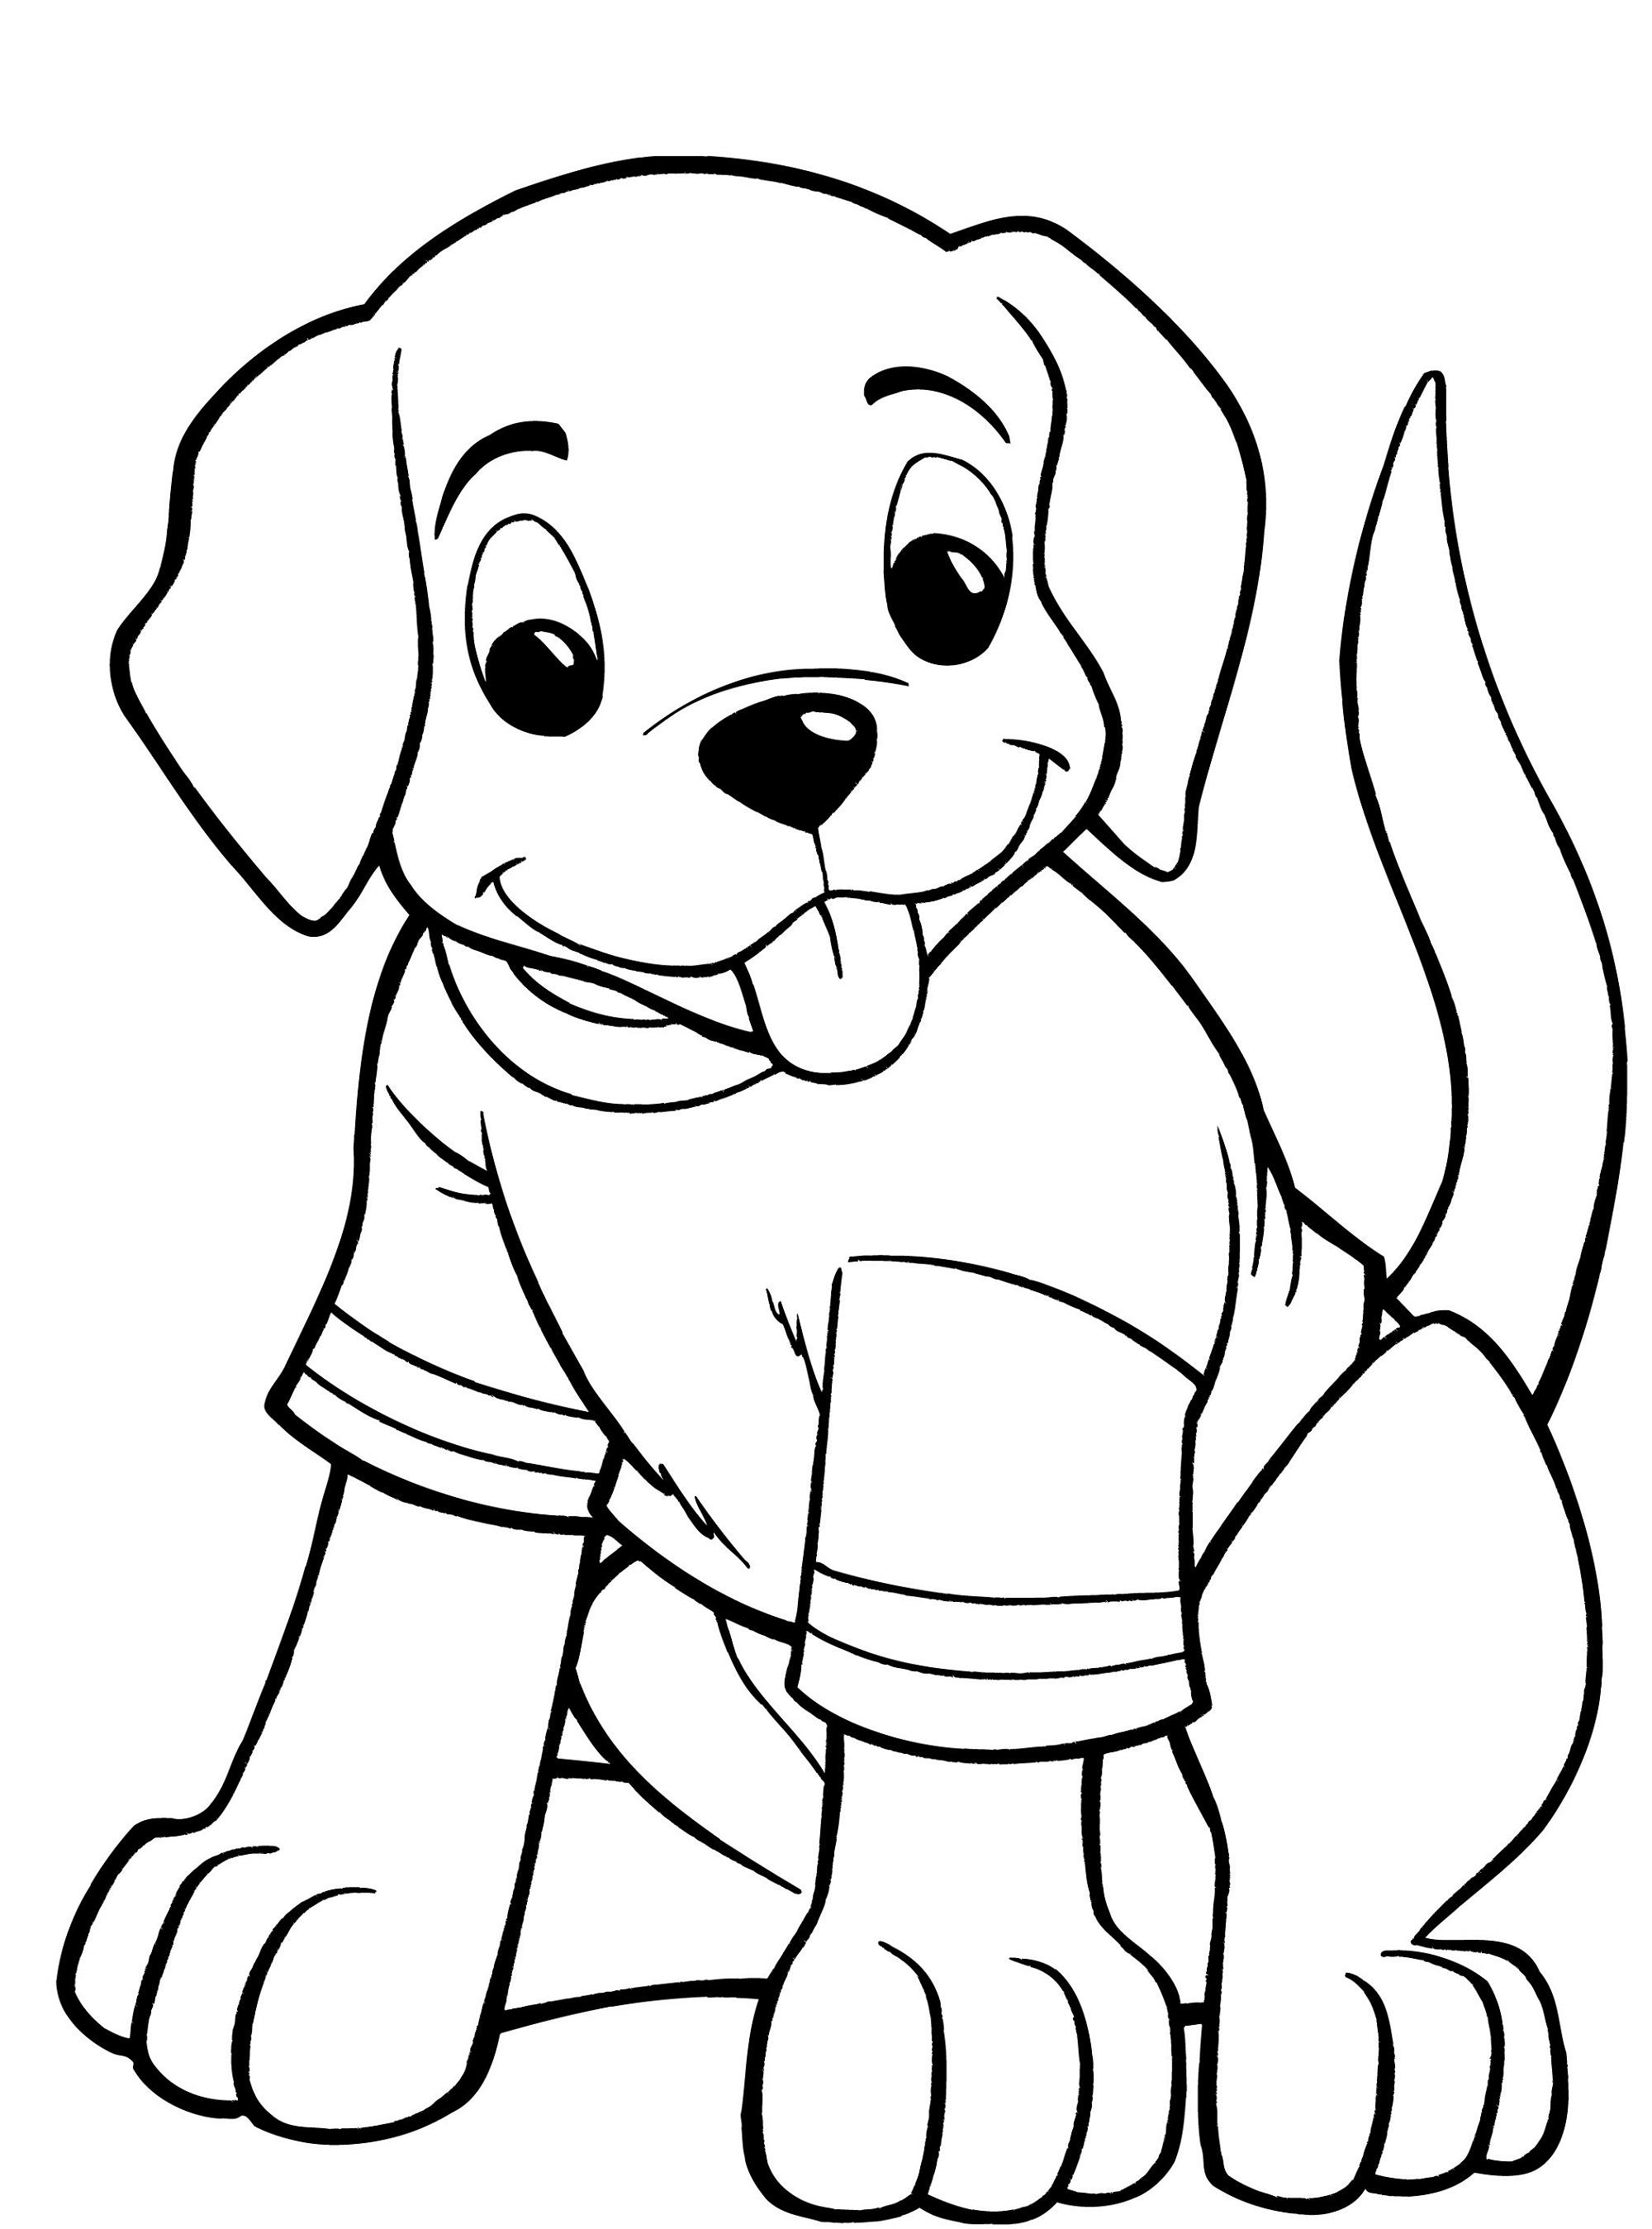 Drawing Sheets for Colouring Dog